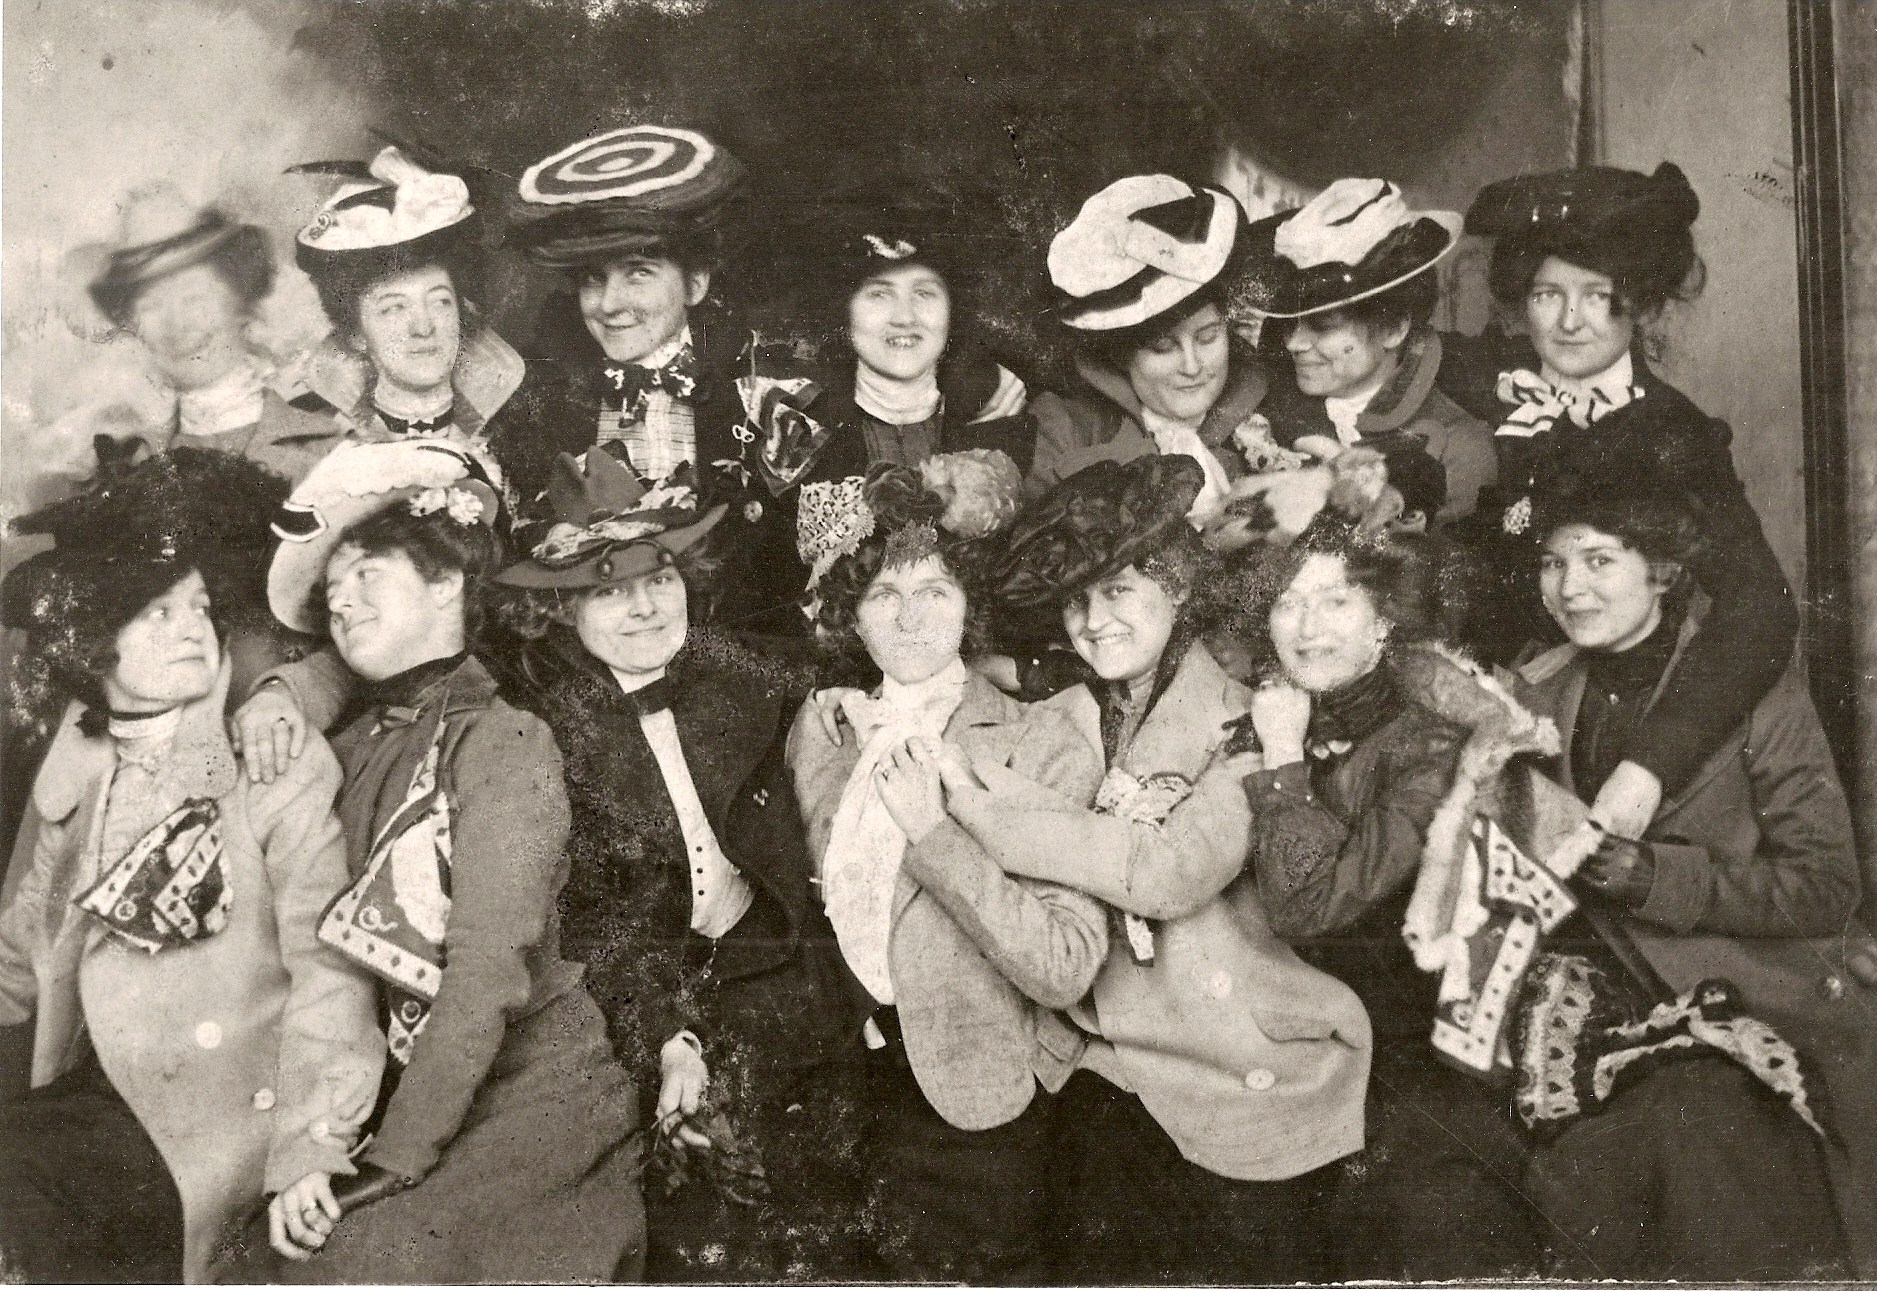 Early members of the Bachelor Girl's Library Club, later named the Maids and Matrons Library Club after several members married and continued their membership in the club.